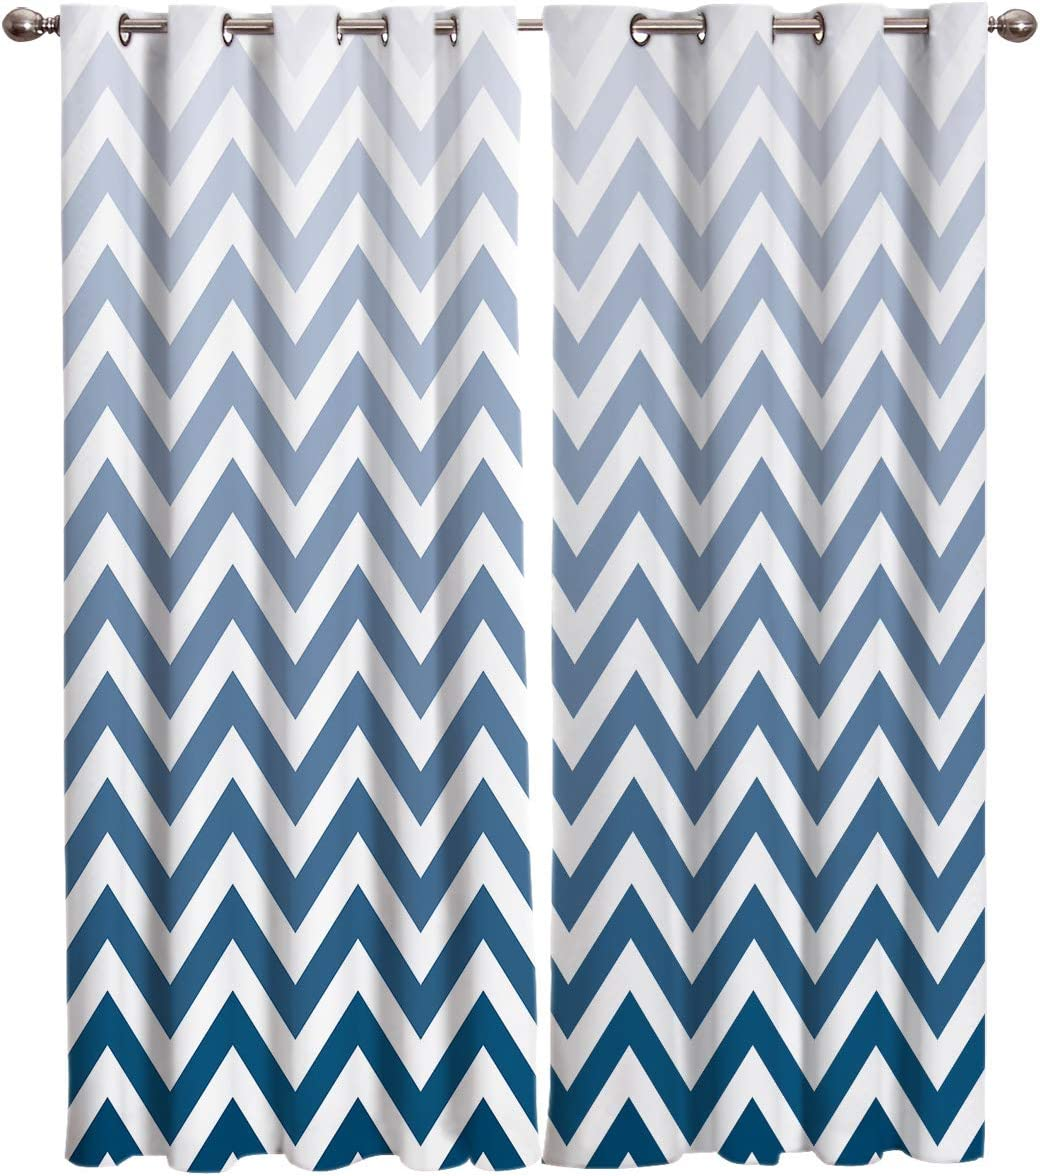 Amazon Com Blackout Curtains Geometric Ombre Chevron Blue Stripe Room Darkening Thermal Insulated Drapes Window Treatments Window Curtain For Bedroom Living Room Set Of 2 Curtain Panels 52x72inch Home Kitchen